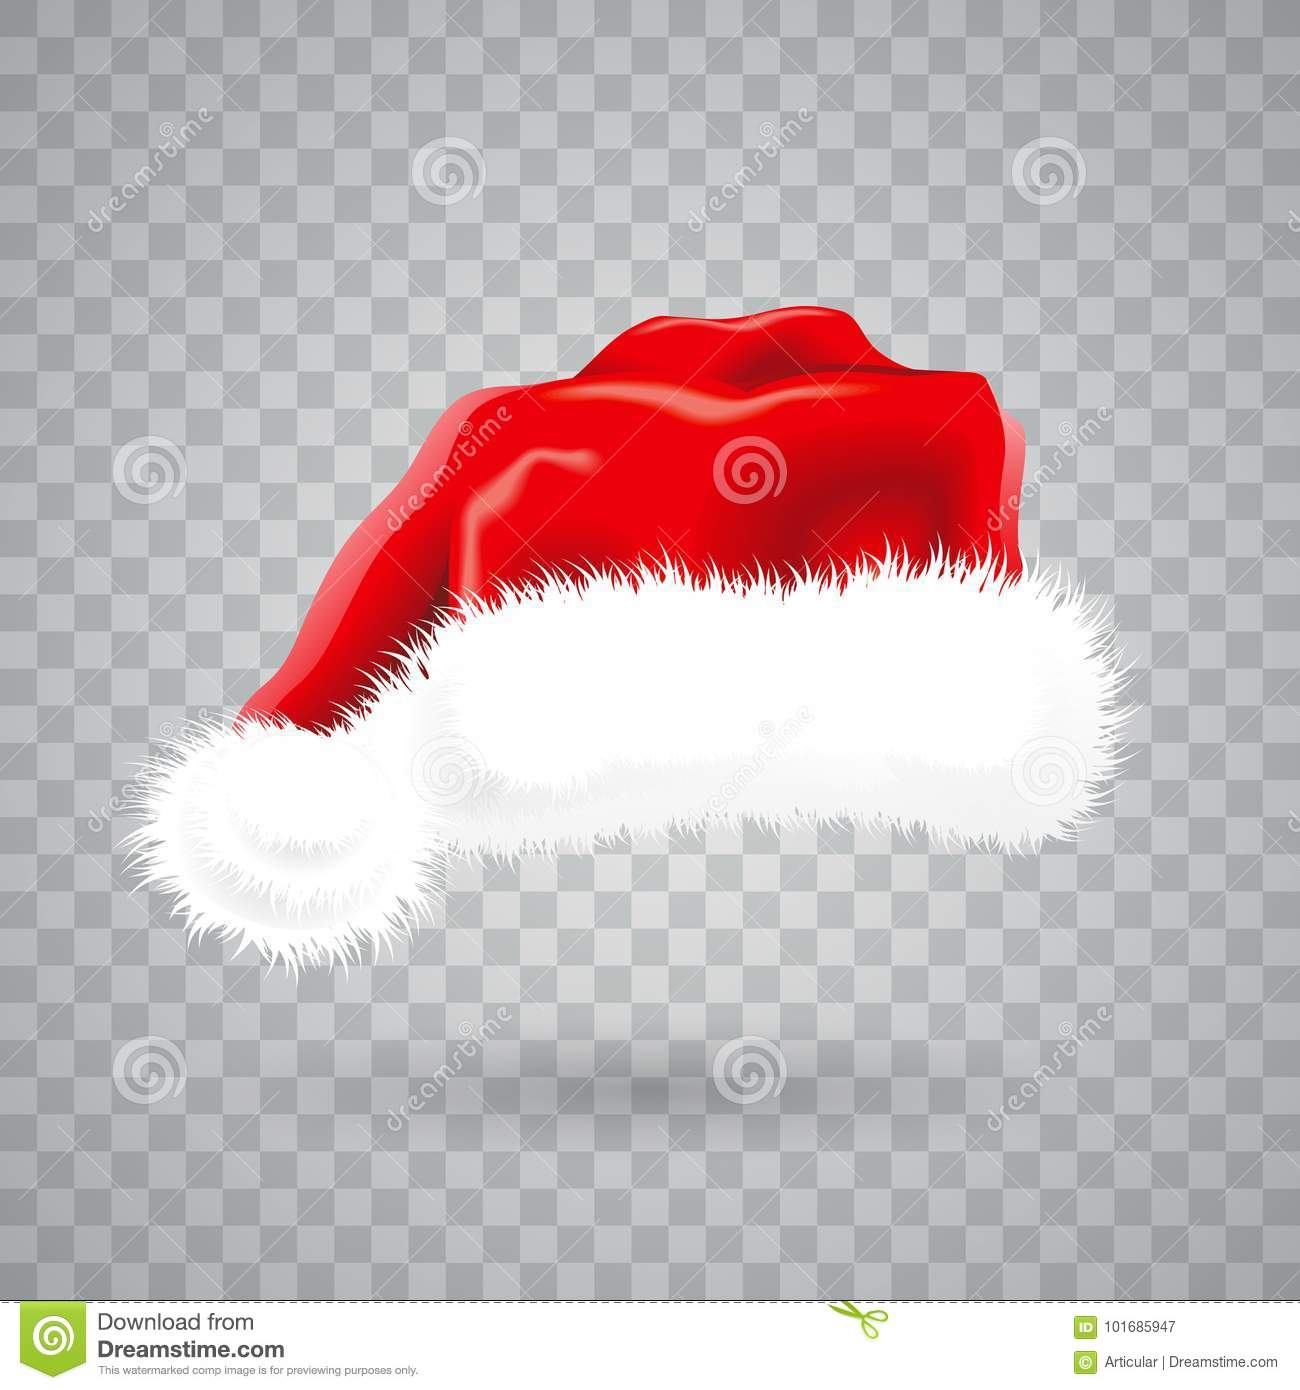 Transparent Christmas Hat.Christmas Illustration With Red Santa Hat On Transparent